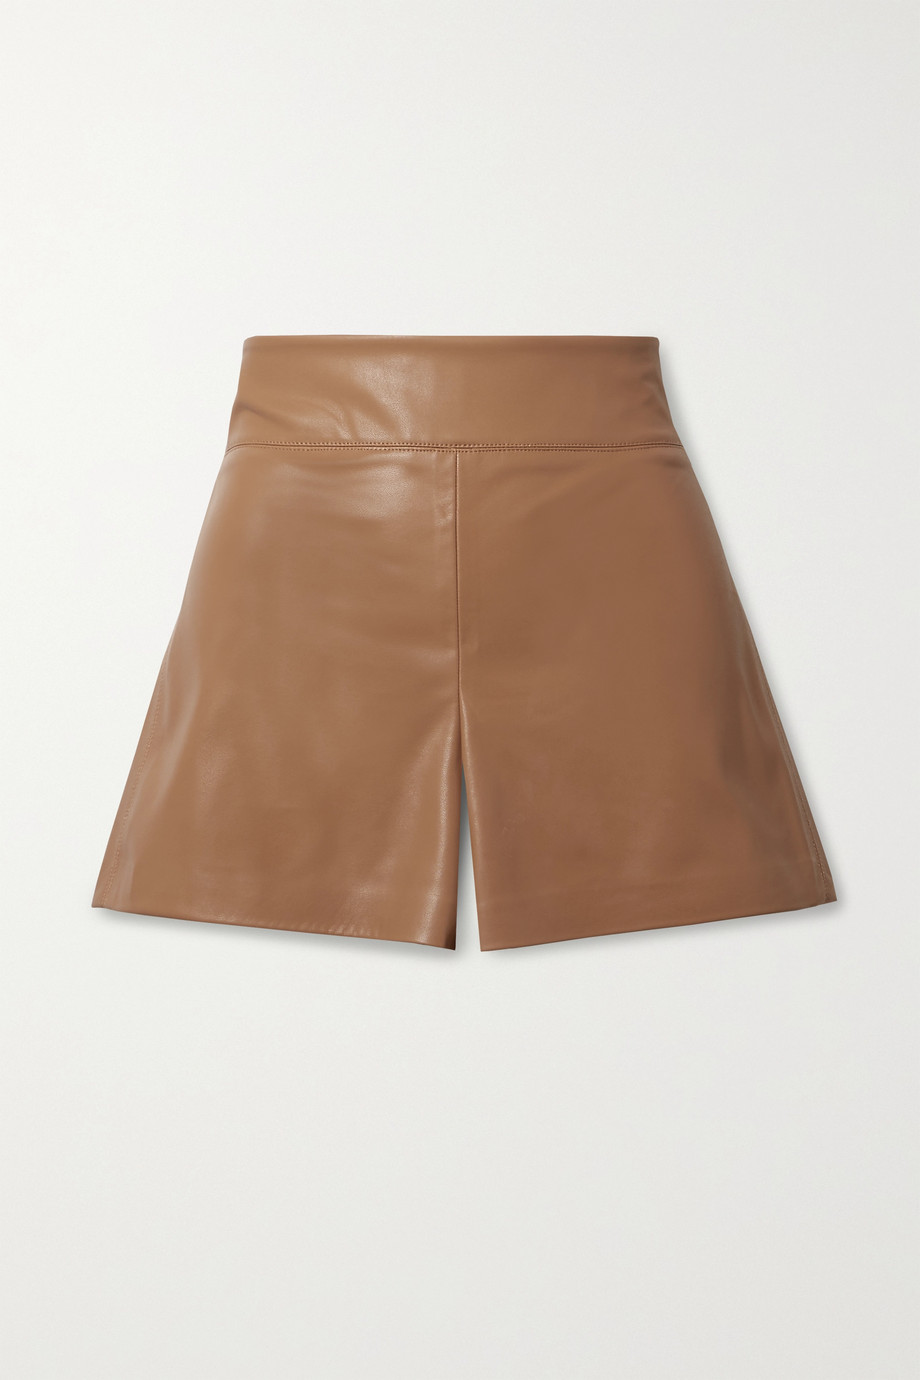 Alice + Olivia Donald vegan stretch-leather shorts